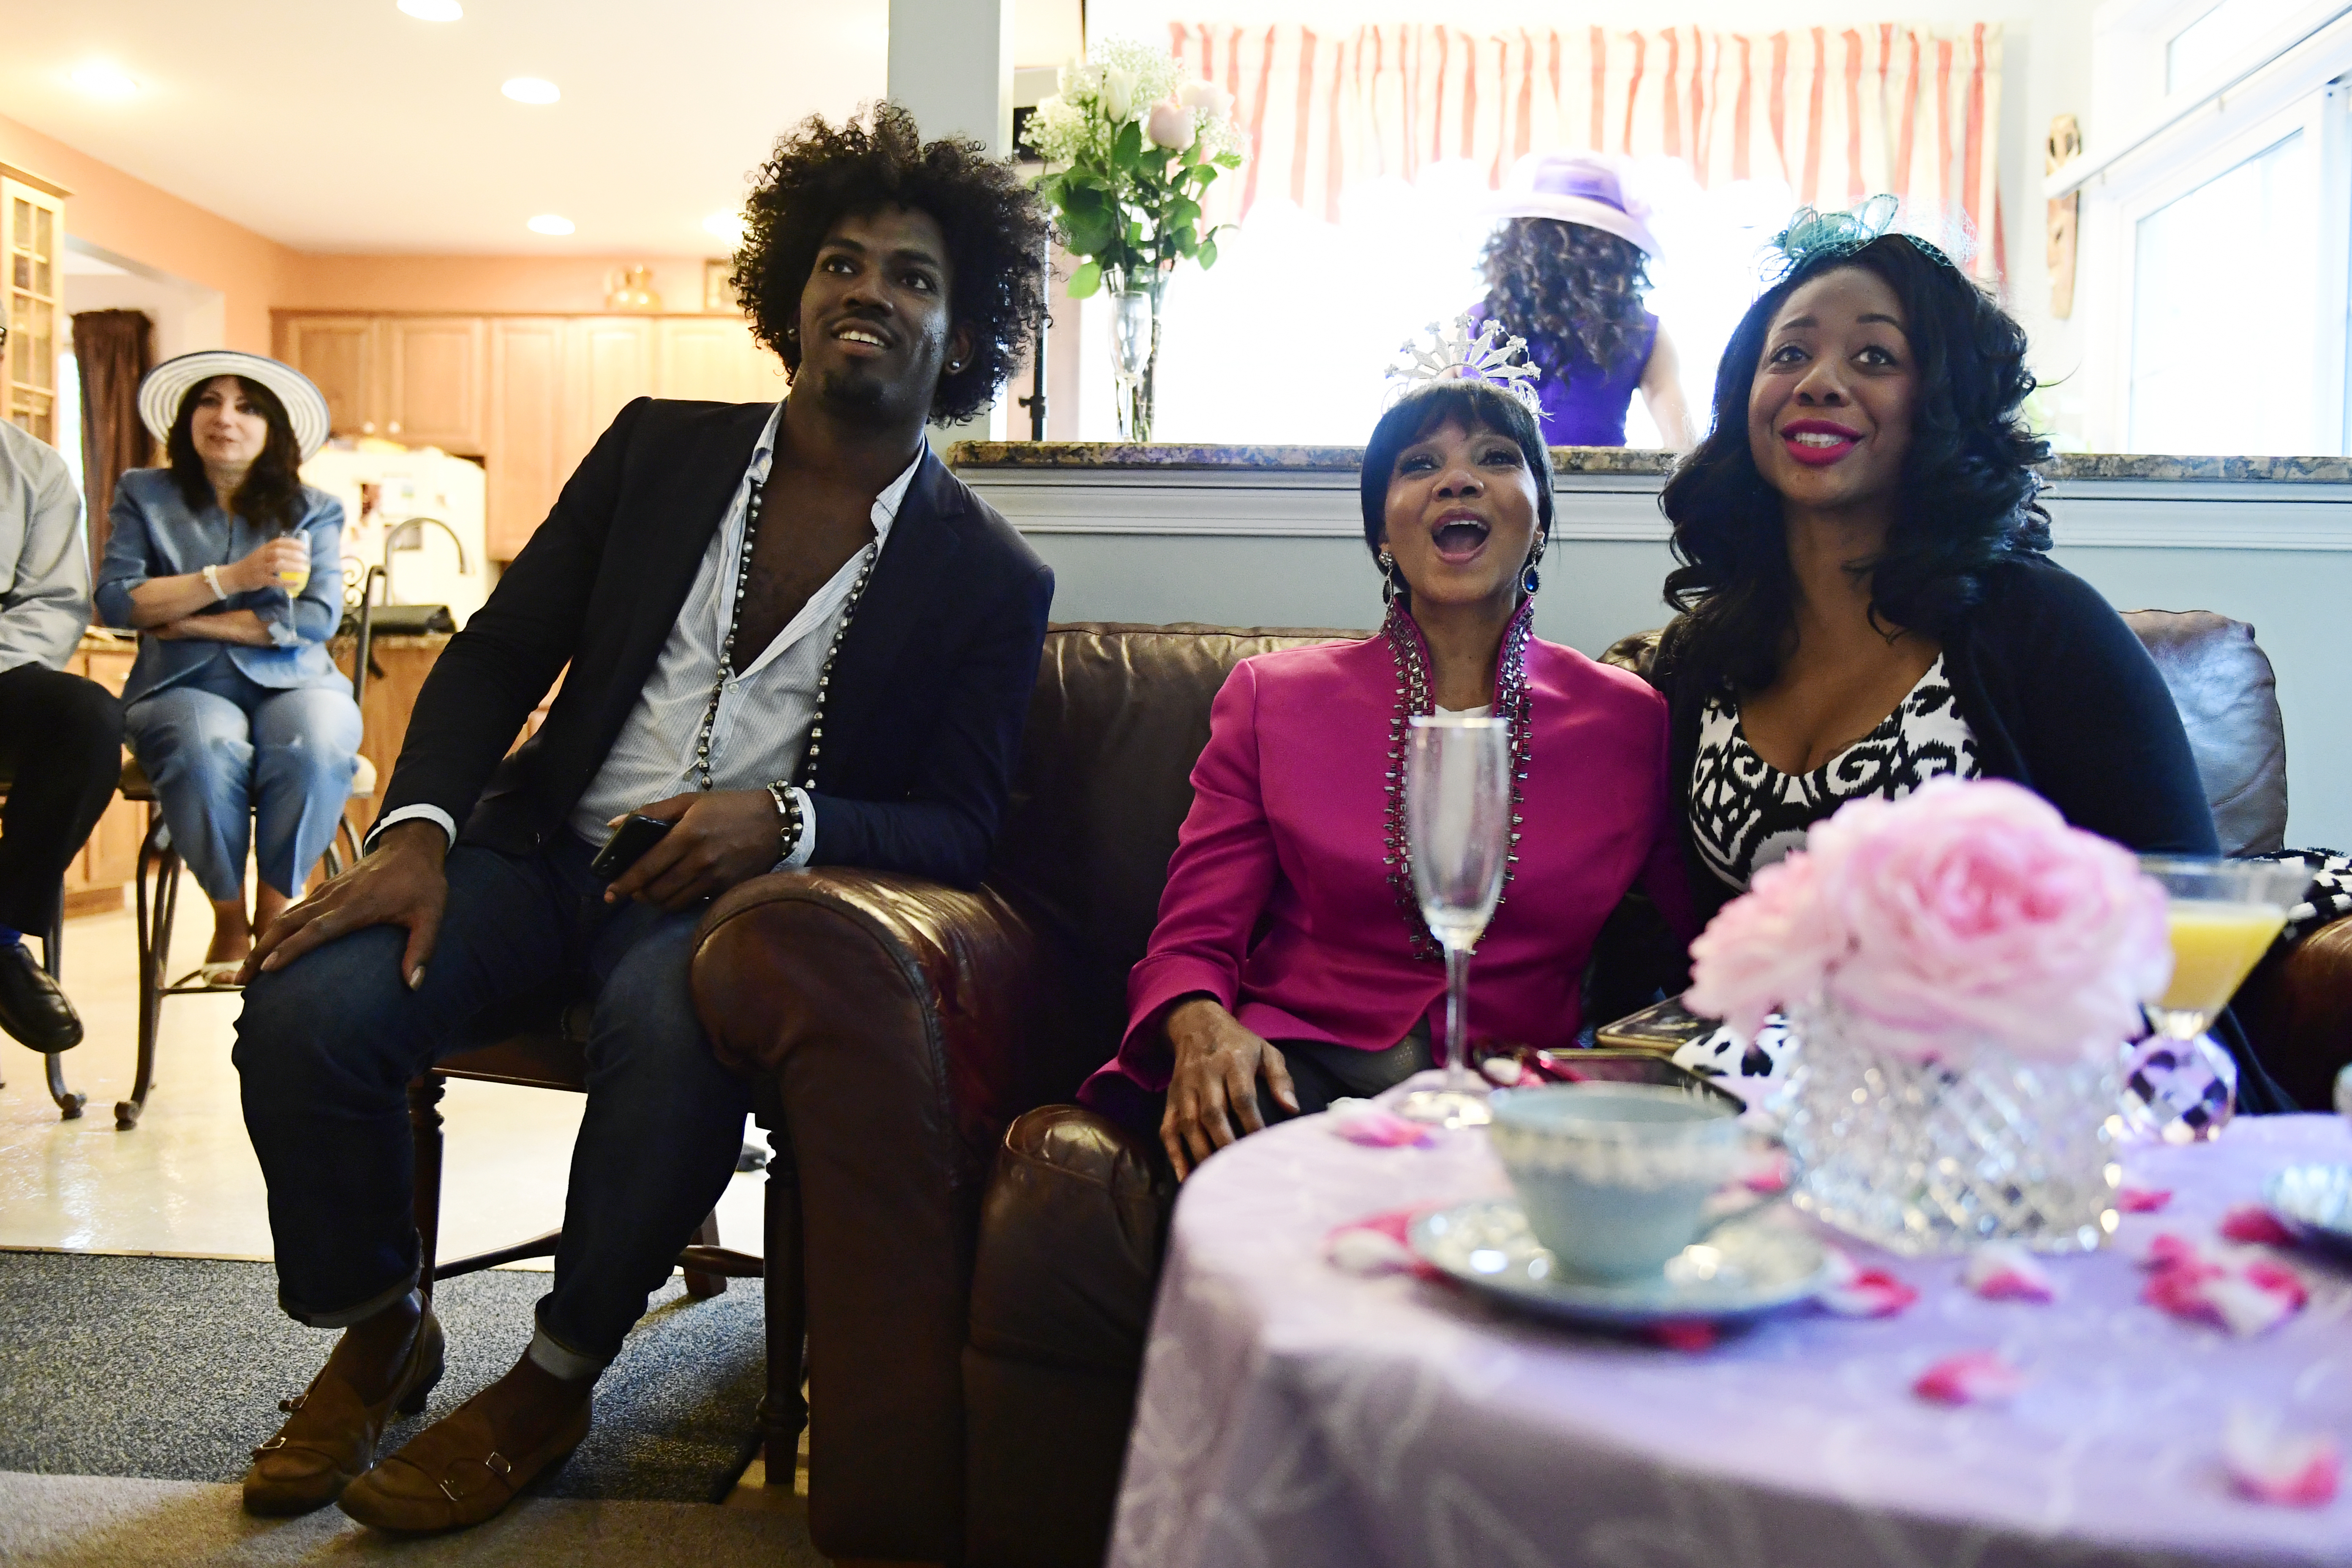 From left, David Alexander Jenkins, Paula Jackson and Cherri Gregg, all of Philadelphia, react during a television viewing party of the royal wedding of Meghan Markle and Prince Harry, Saturday, May 18, 2018, at the Armstrong-Turner residence in Burlington, N.J. The ceremony married the pomp and circumstance of Britain´s most sacred institution with elements of black culture, drawing viewers not normally drawn to the spectacle of the monarchy. (AP Photo/Corey Perrine)